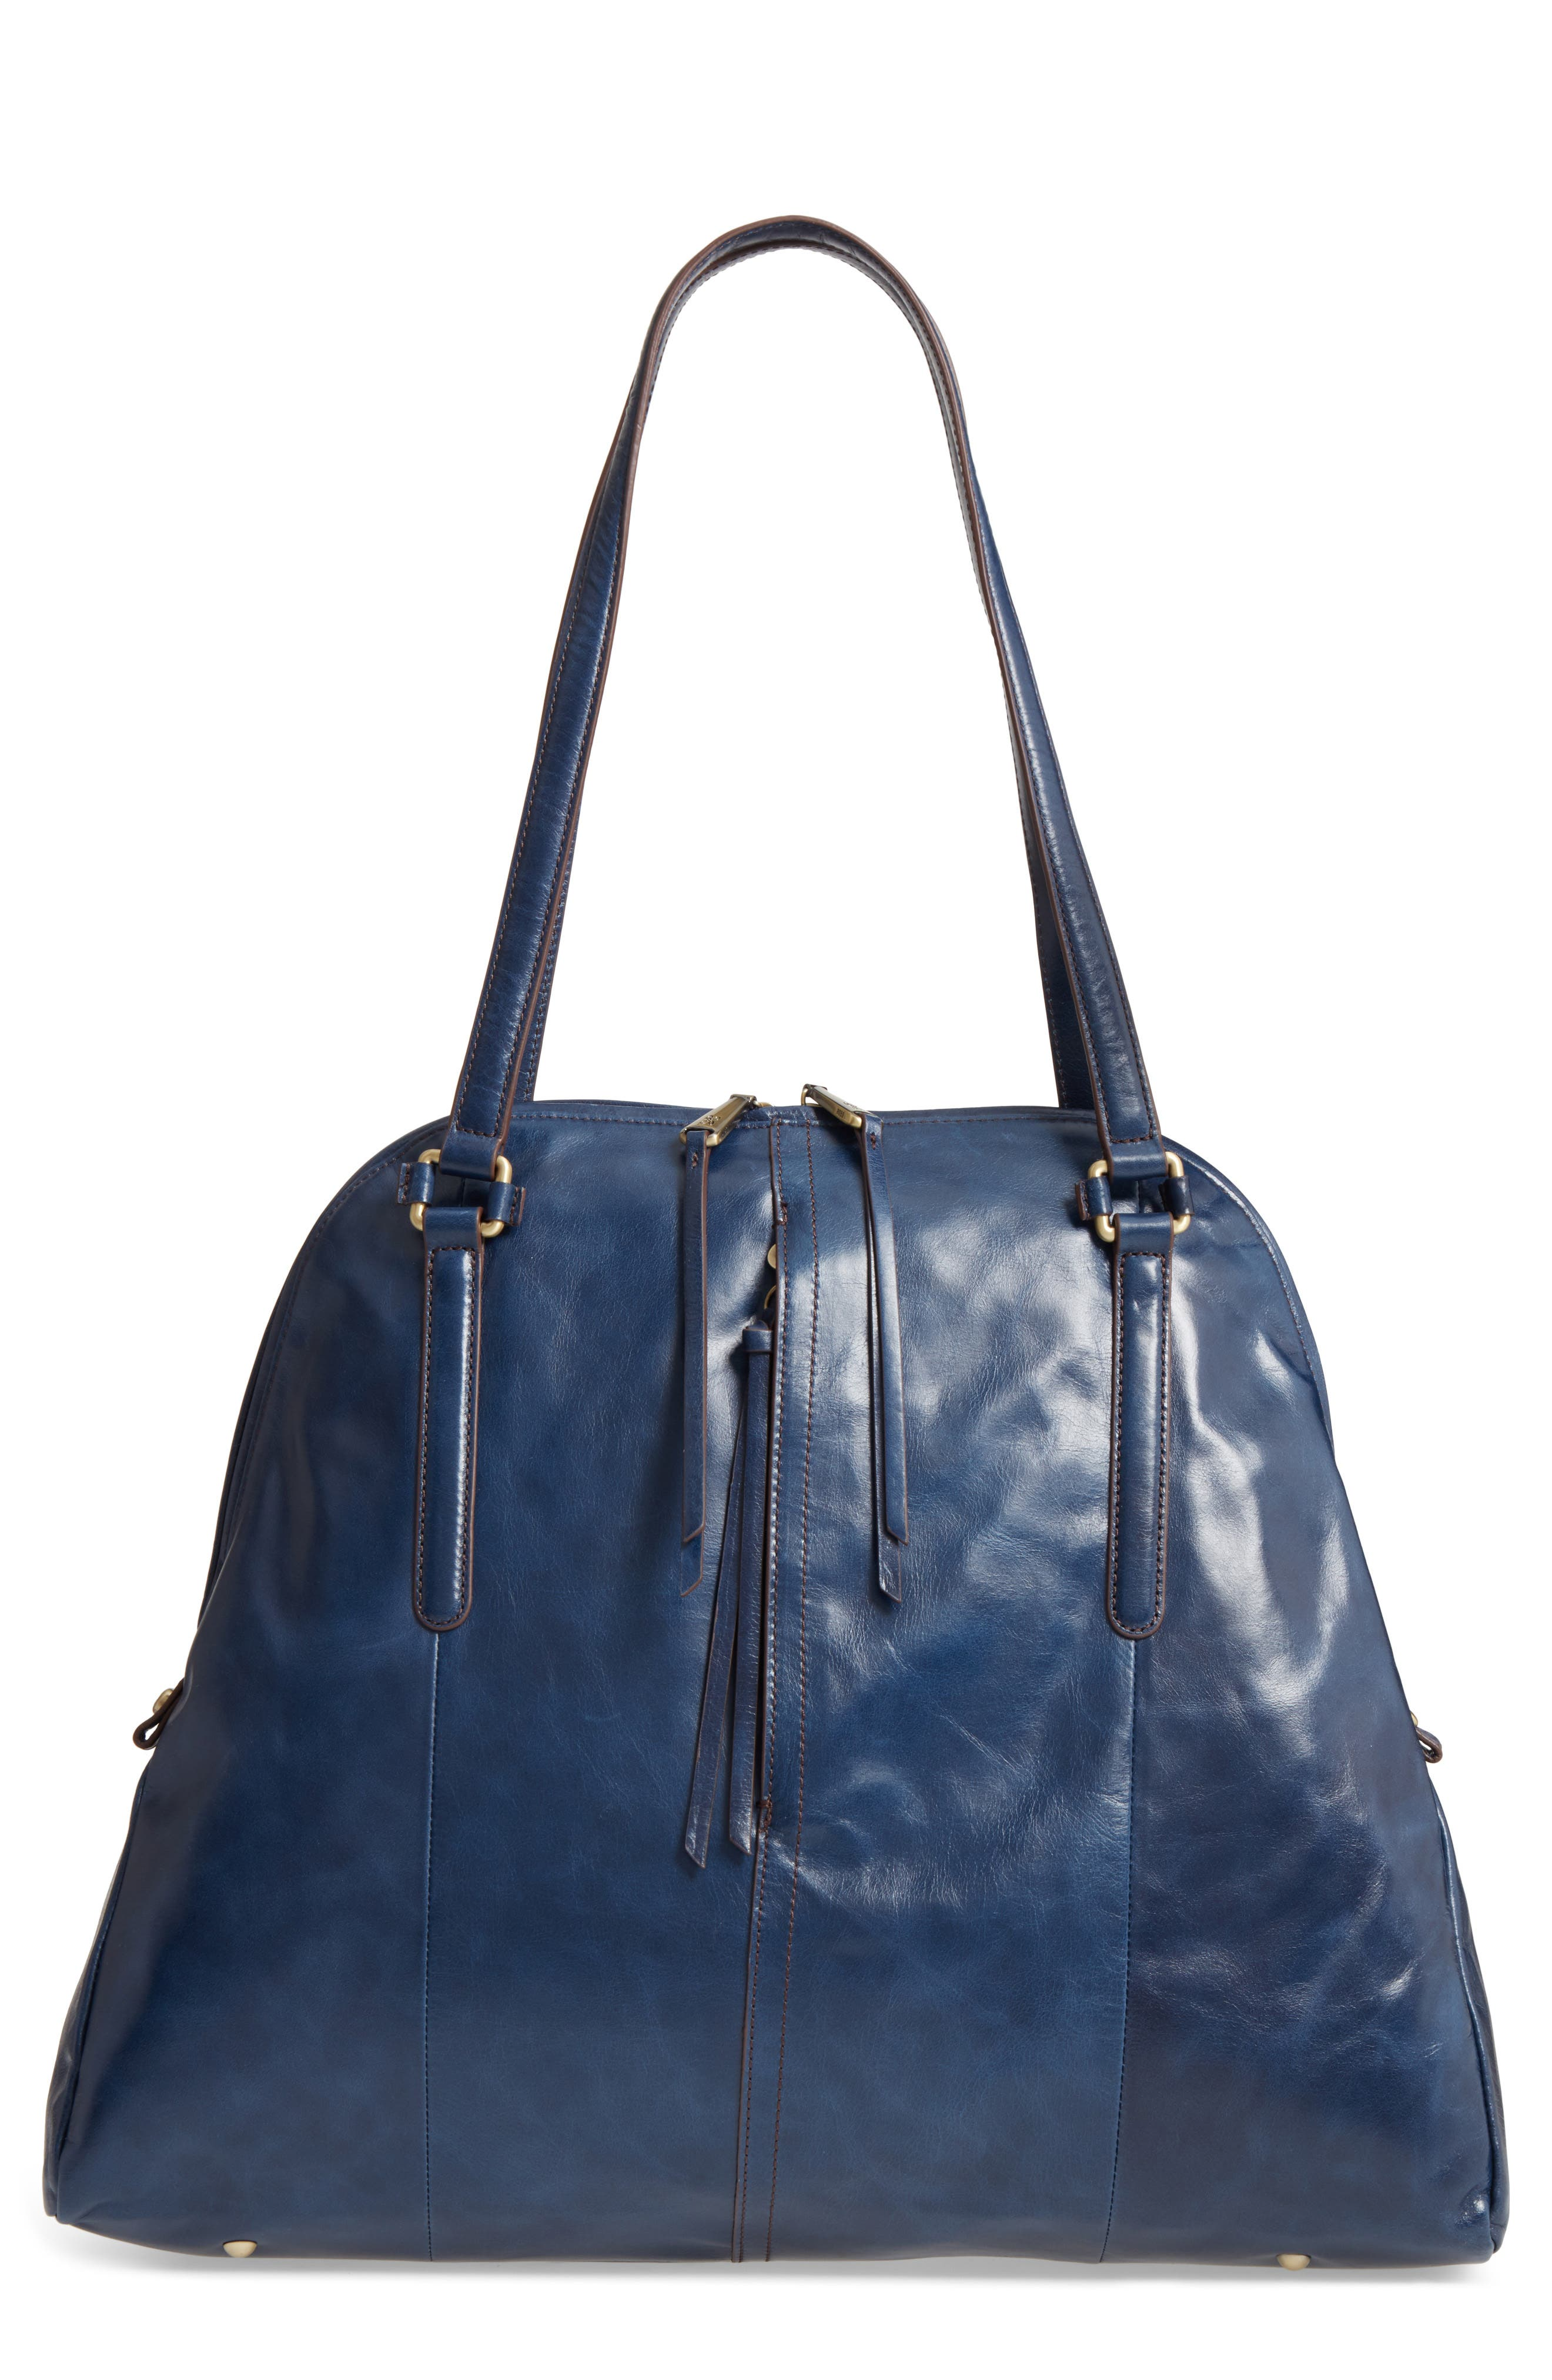 Main Image - Hobo Delaney Calfskin Leather Tote